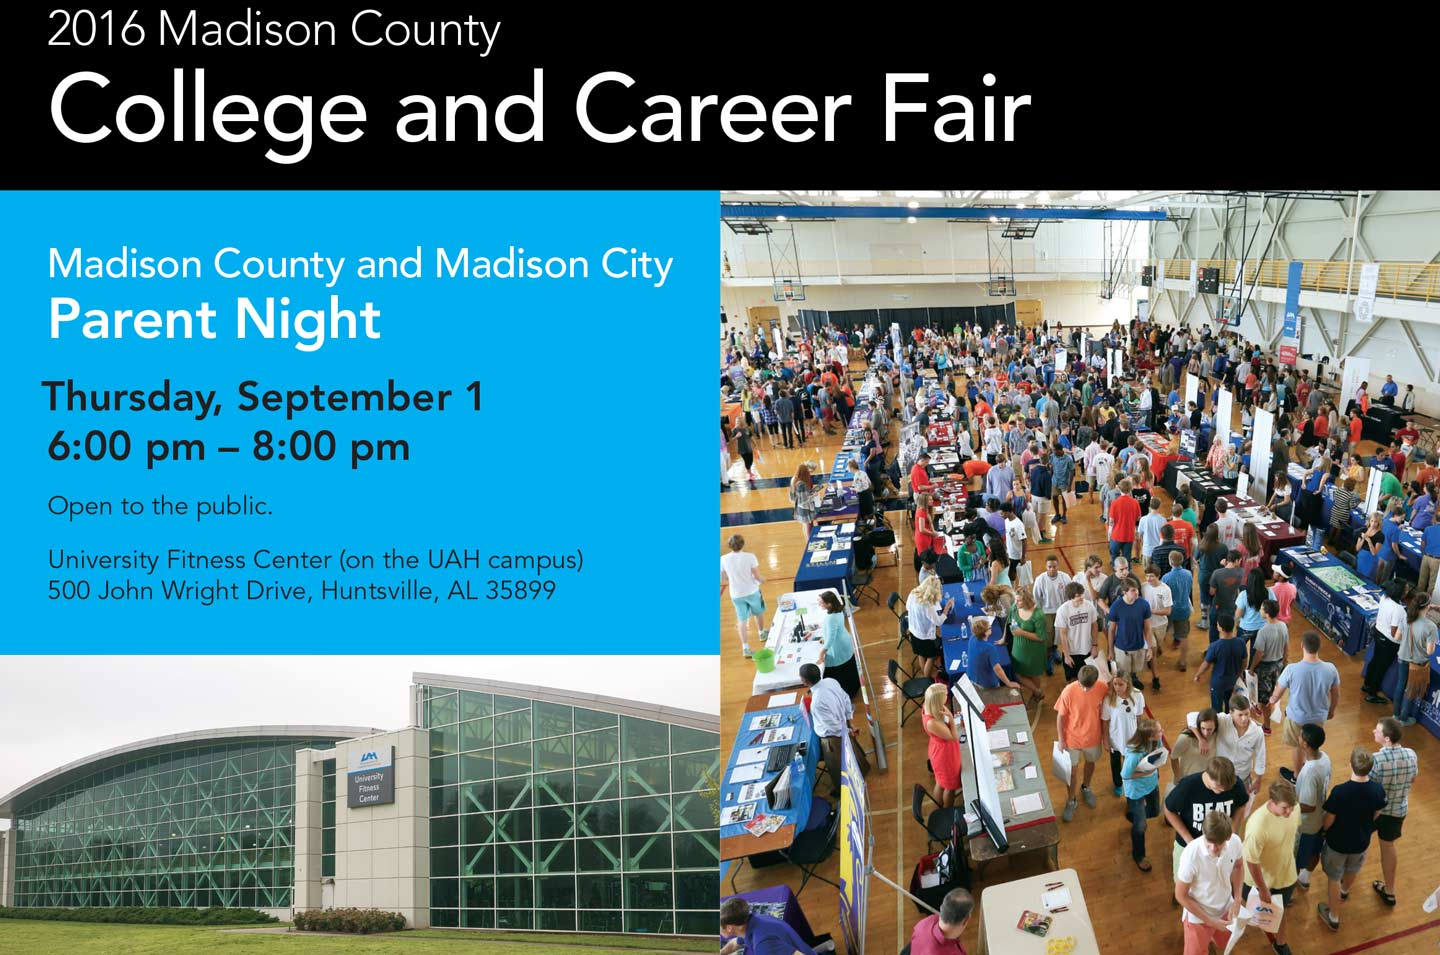 2016 Madison County College and Career Fair. Madison County and Madison City Parent Night. Thursday, September 1 6 pm to 8 pm.  Open to the public. University Fitness Center (on the UAH campus) 500 John Wright Drive, Huntsville, Al. 35899